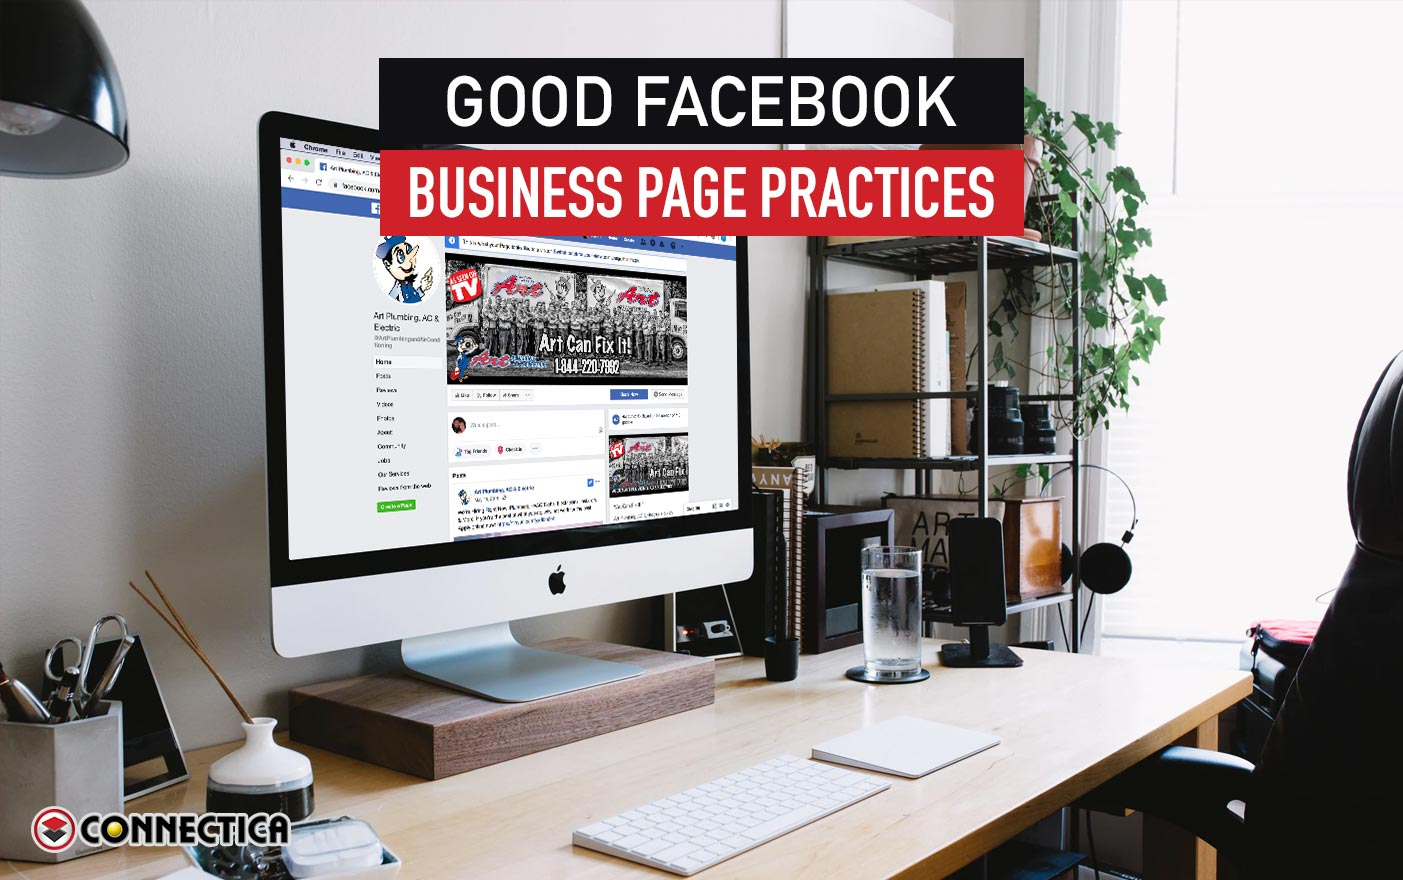 Good Facebook Business Page Practices